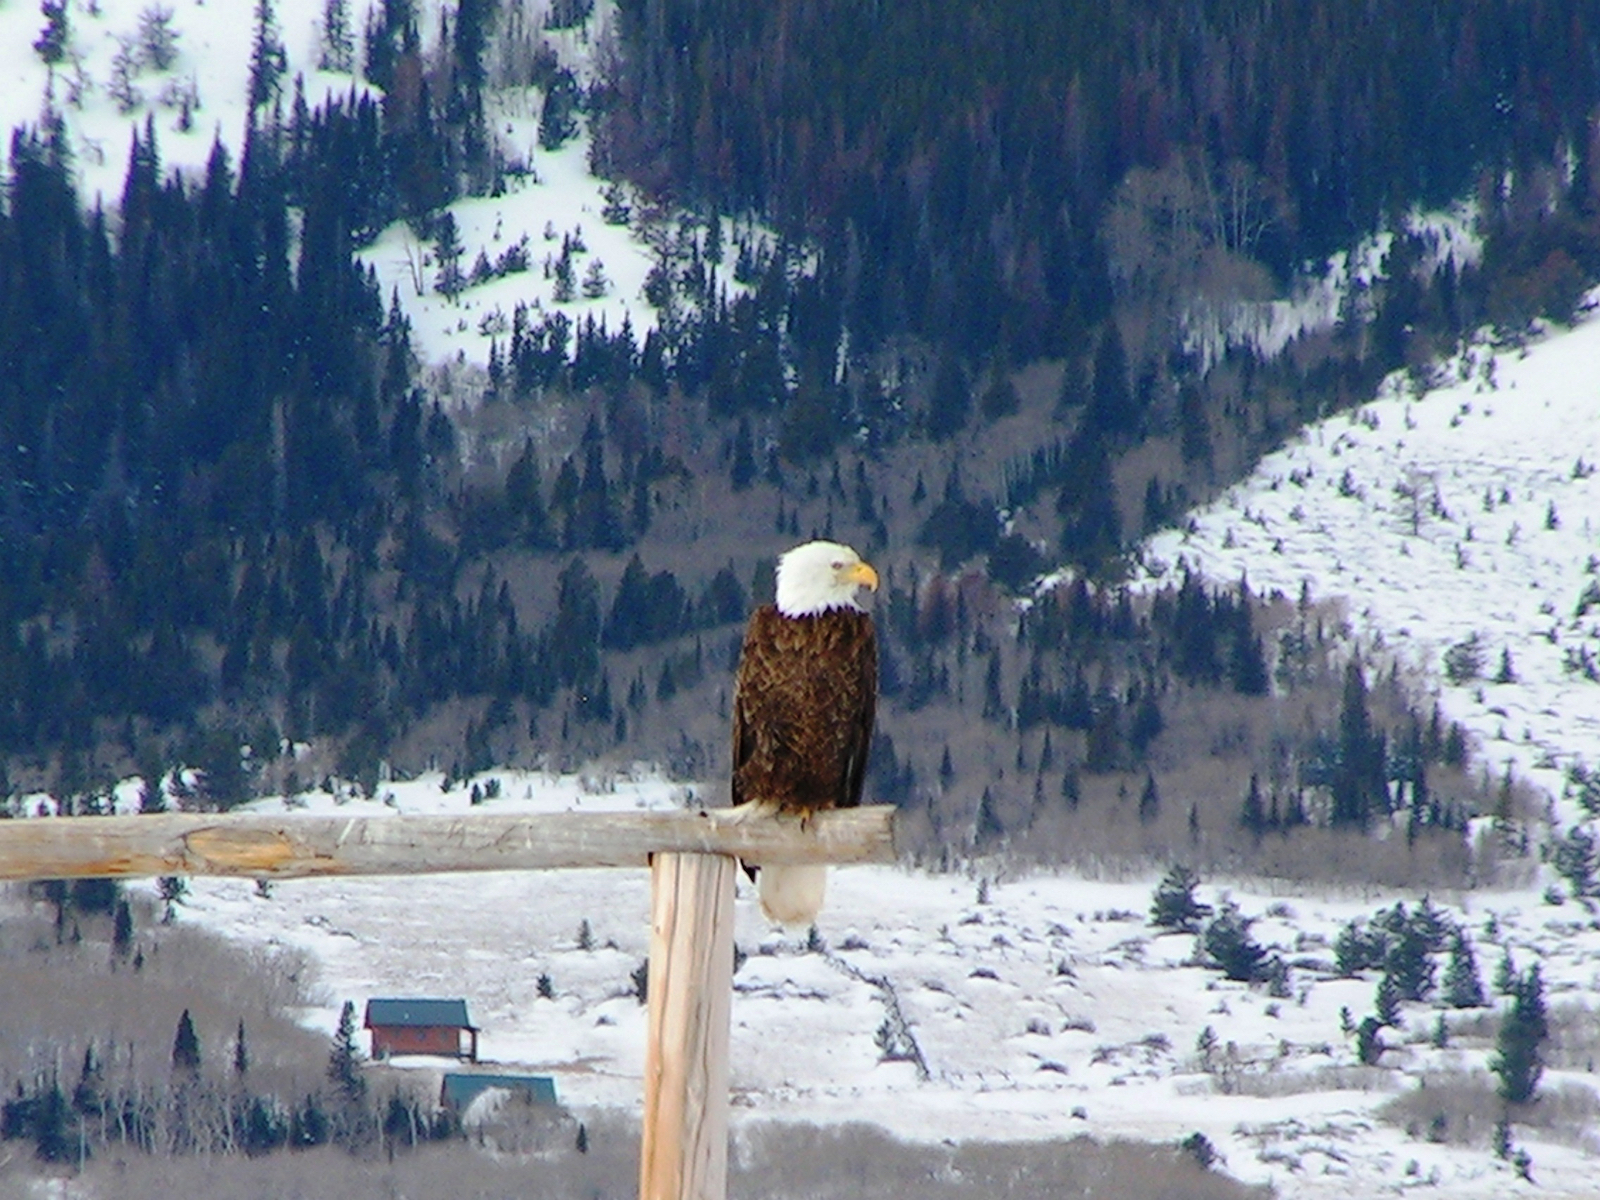 Bald eagle in the winter in Wyoming's Carbon County